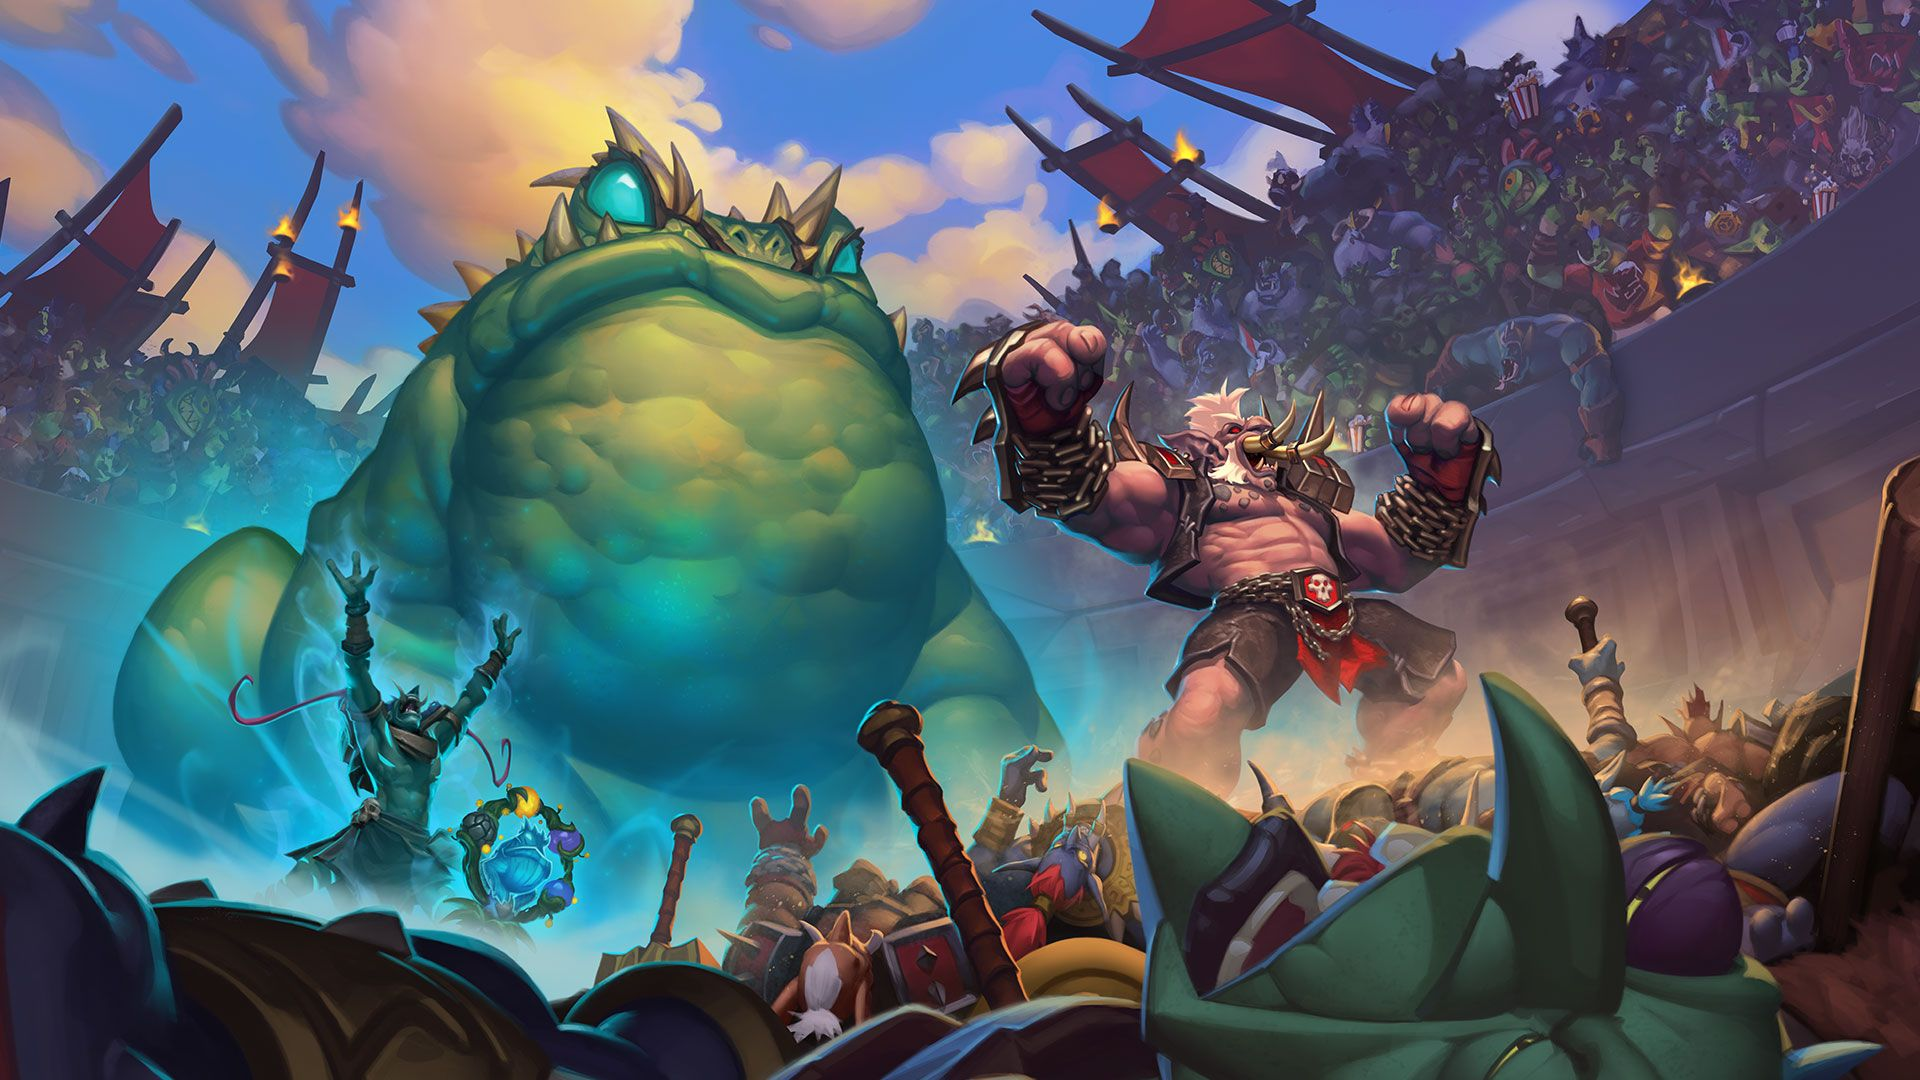 Hearthstone Wallpapers - Top Free